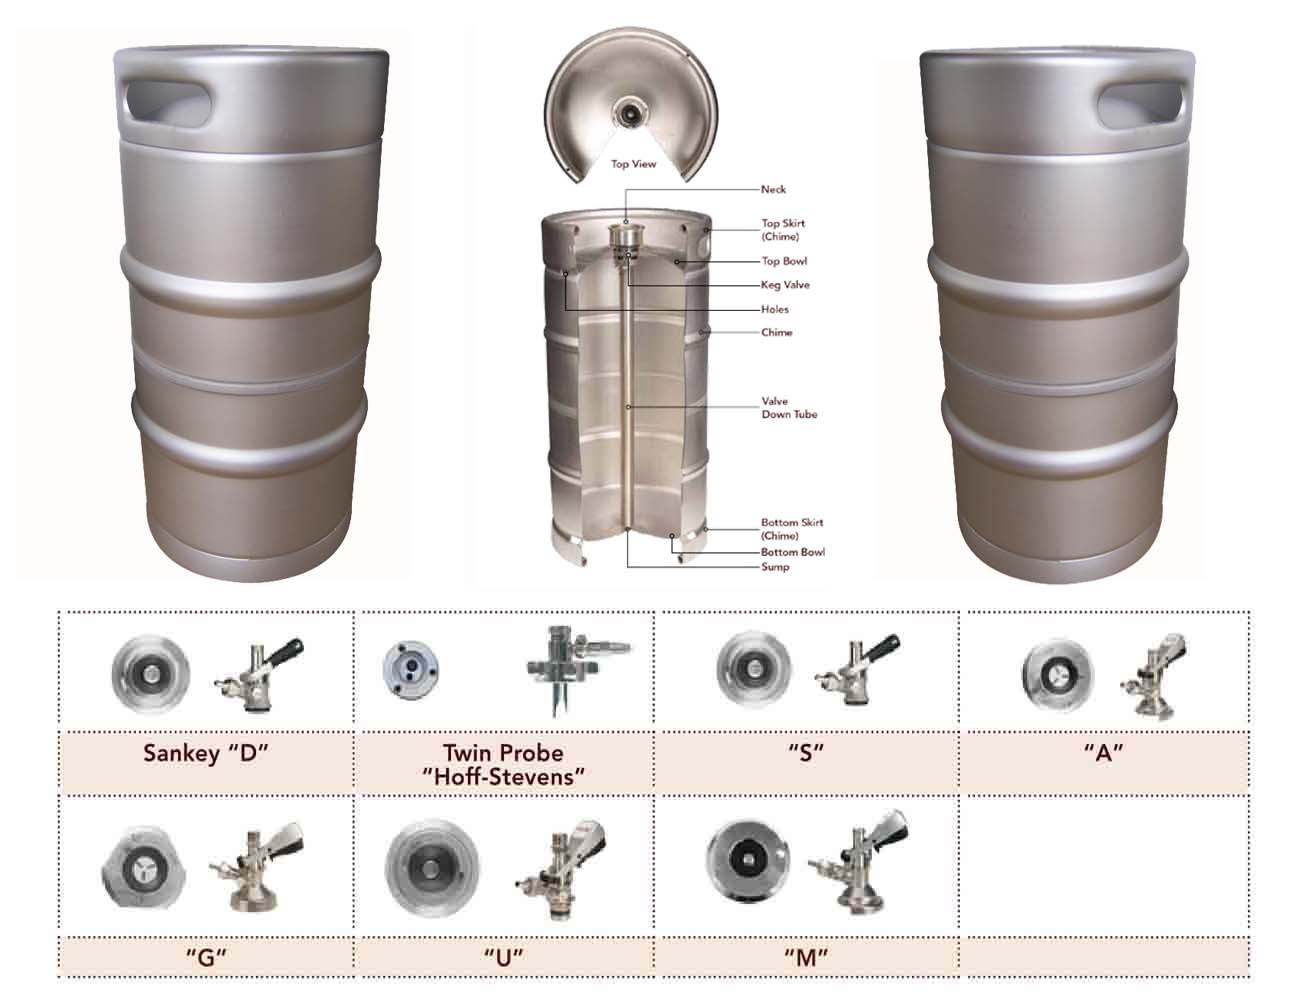 <b>USA standard 1/4 bbl stainless steel beer keg</b>